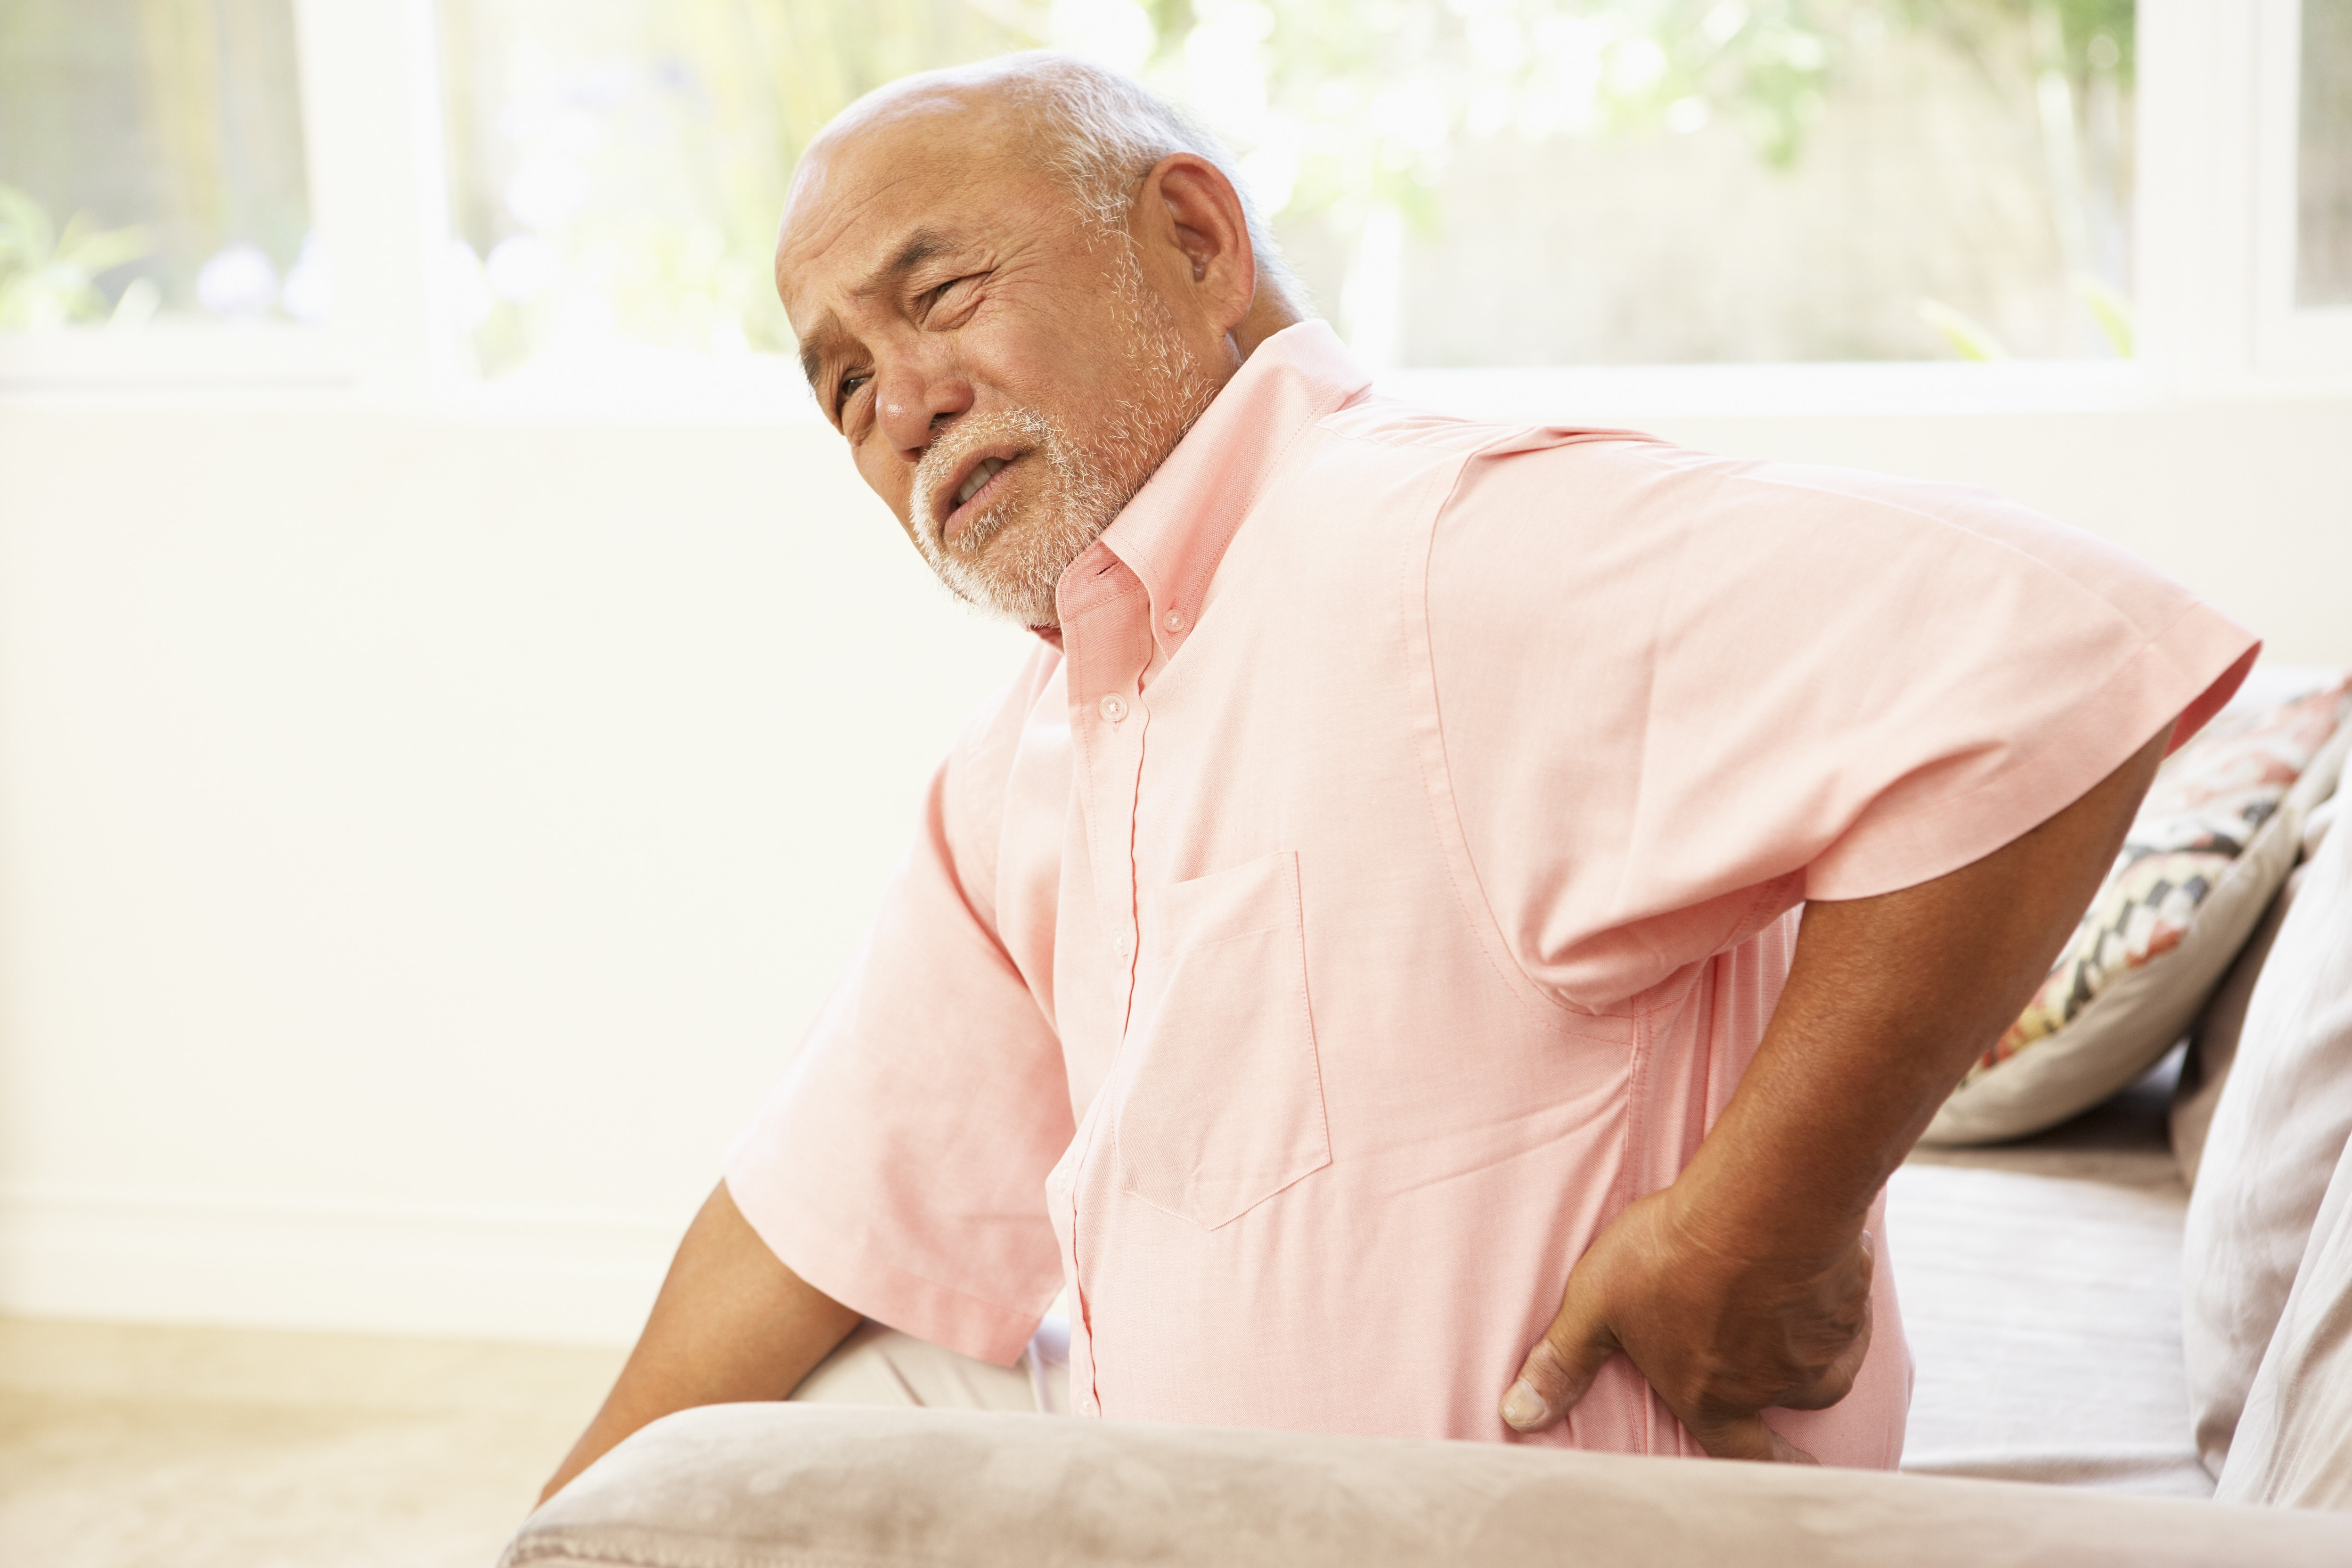 How to treat sciatic nerve and back pain